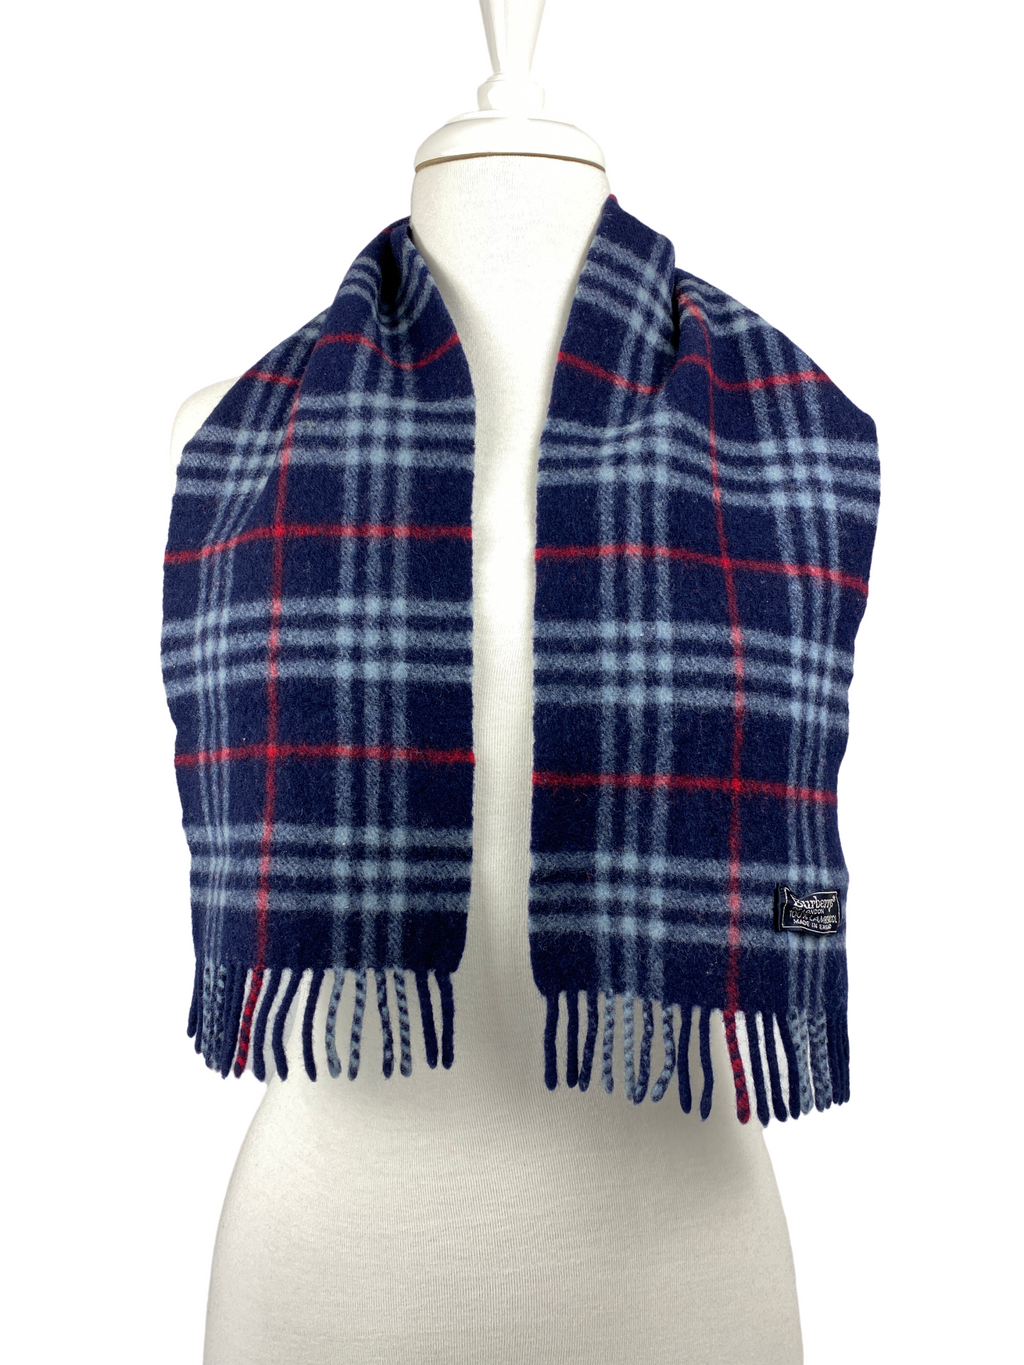 BURBERRY - BLUE NOVA CHECK SCARF 100% WOOL - VINTAGE